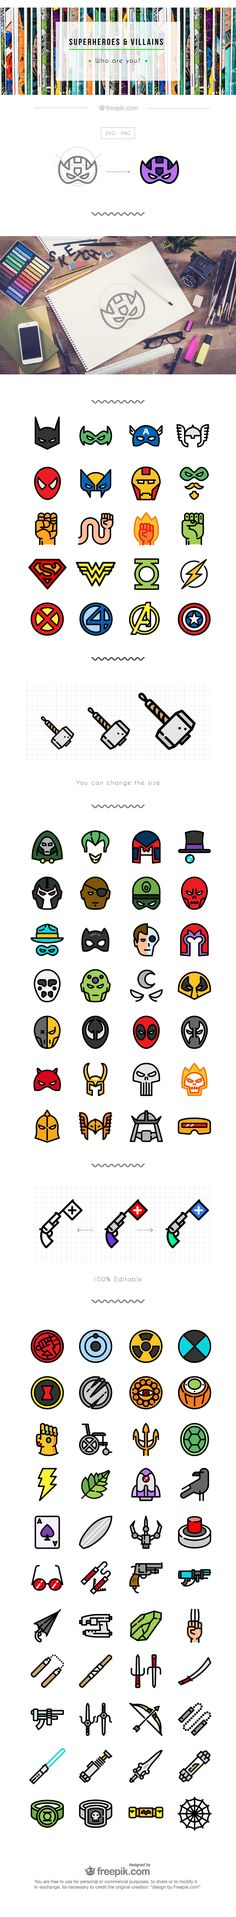 Freebie: The Flat Superheroes & Villains Icon Set (100 Icons, PNG & SVG)